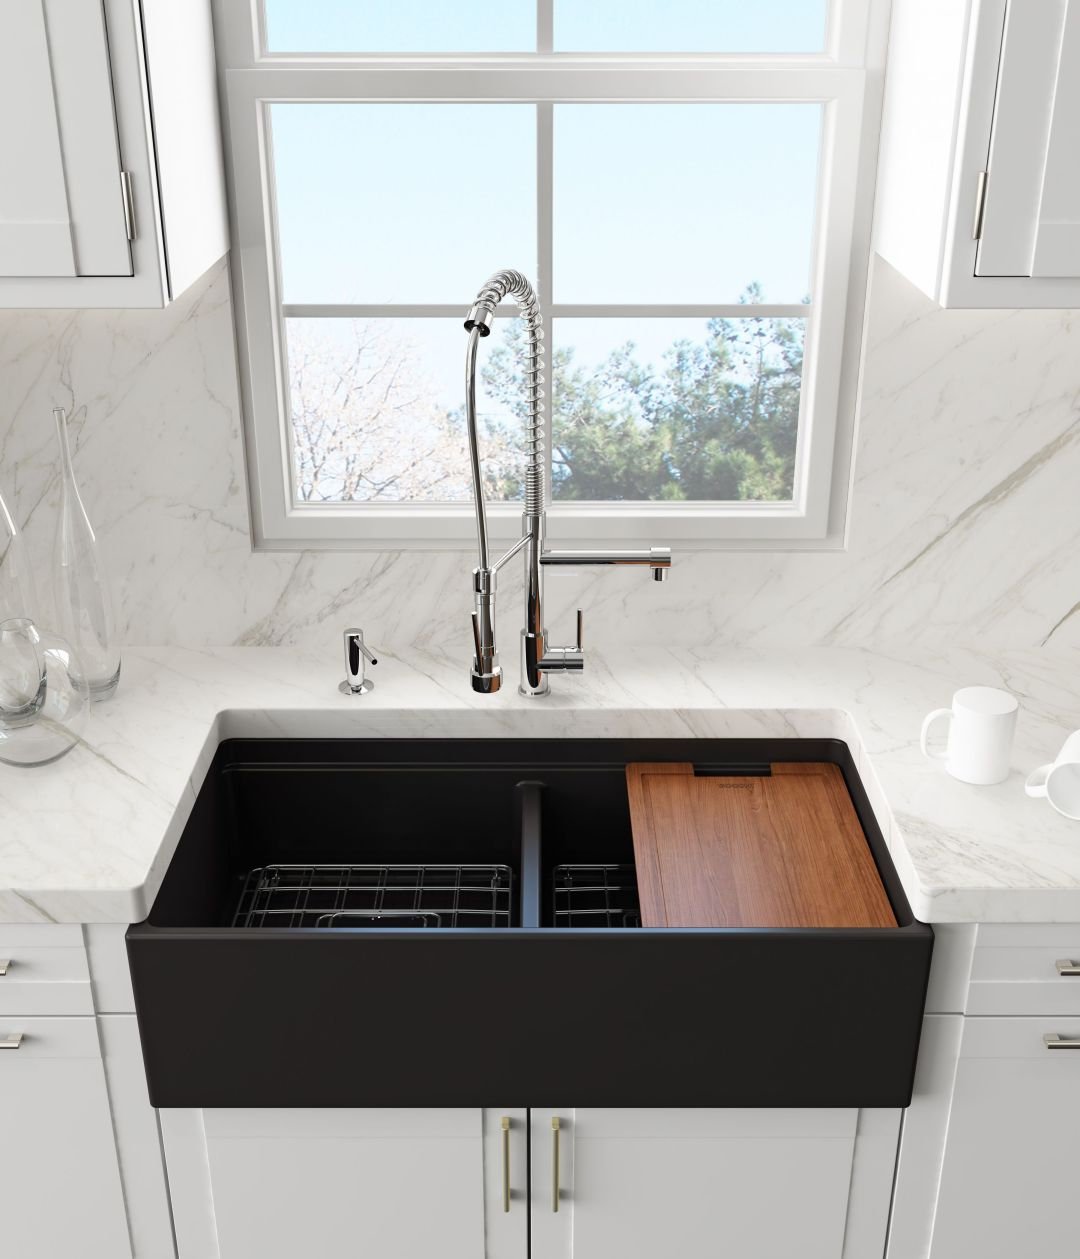 2018-Bocchi-Contempo-36D-Step-Rim Farmhouse Chic - 5 Tips for Picking a Farmhouse Sink